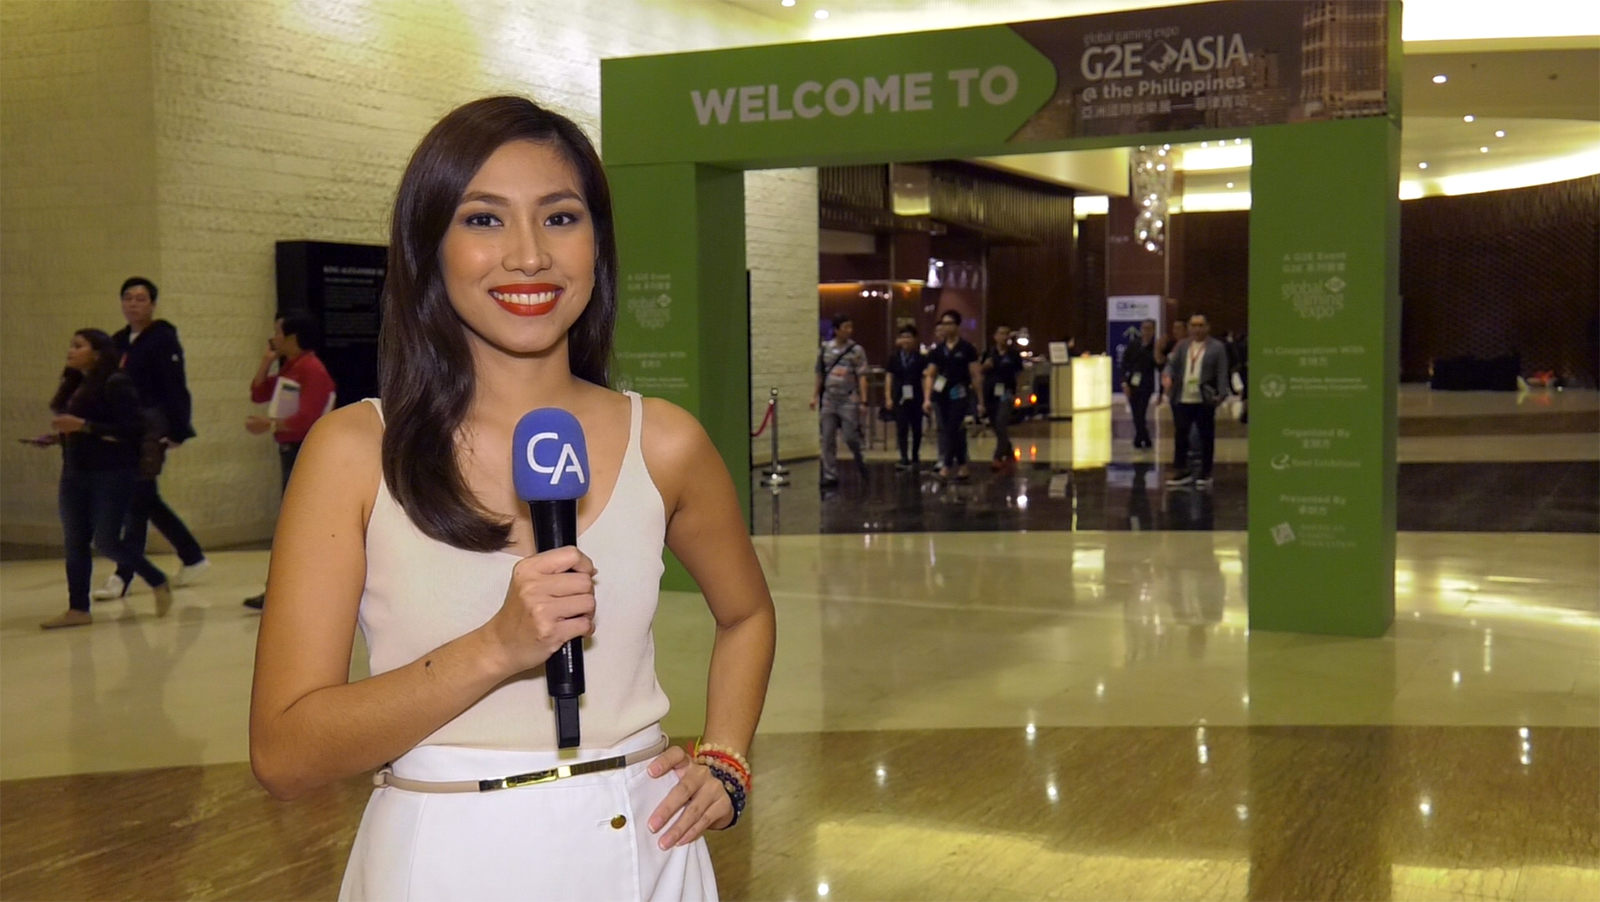 G2E Asia @ the Philippines Day 2 | IT and tech solutions increasing, gaming industry shifting to digital